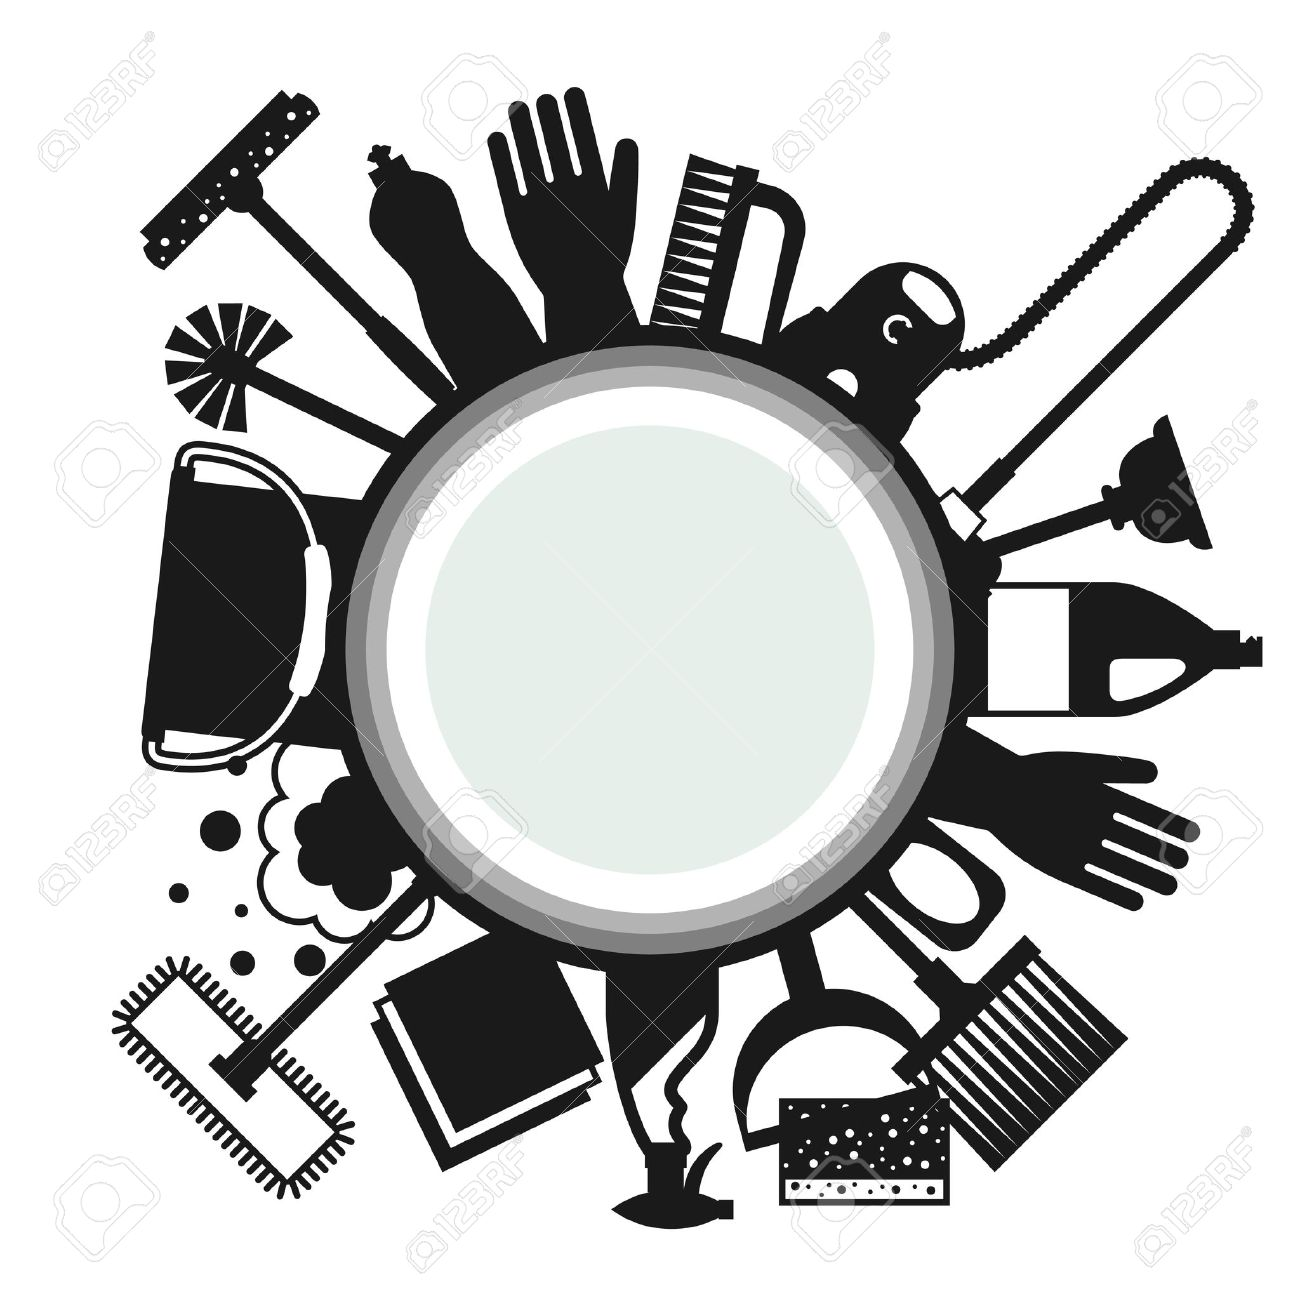 2 251 house mop cliparts stock vector and royalty house mop house mop housekeeping background cleaning icons image can be used on advertising booklets